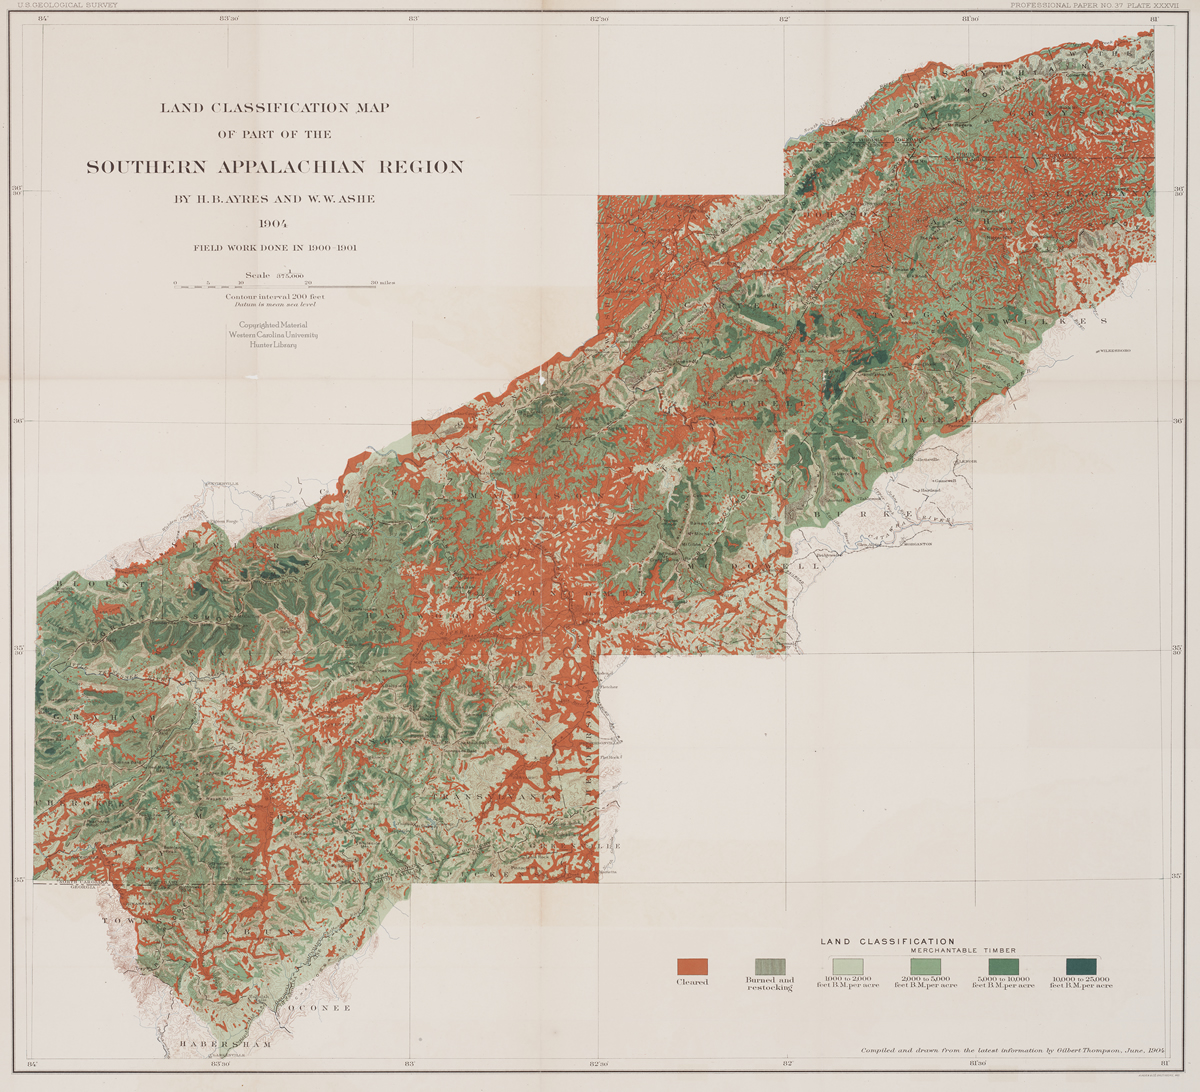 Land Classification Map of the Southern Appalachian Region.